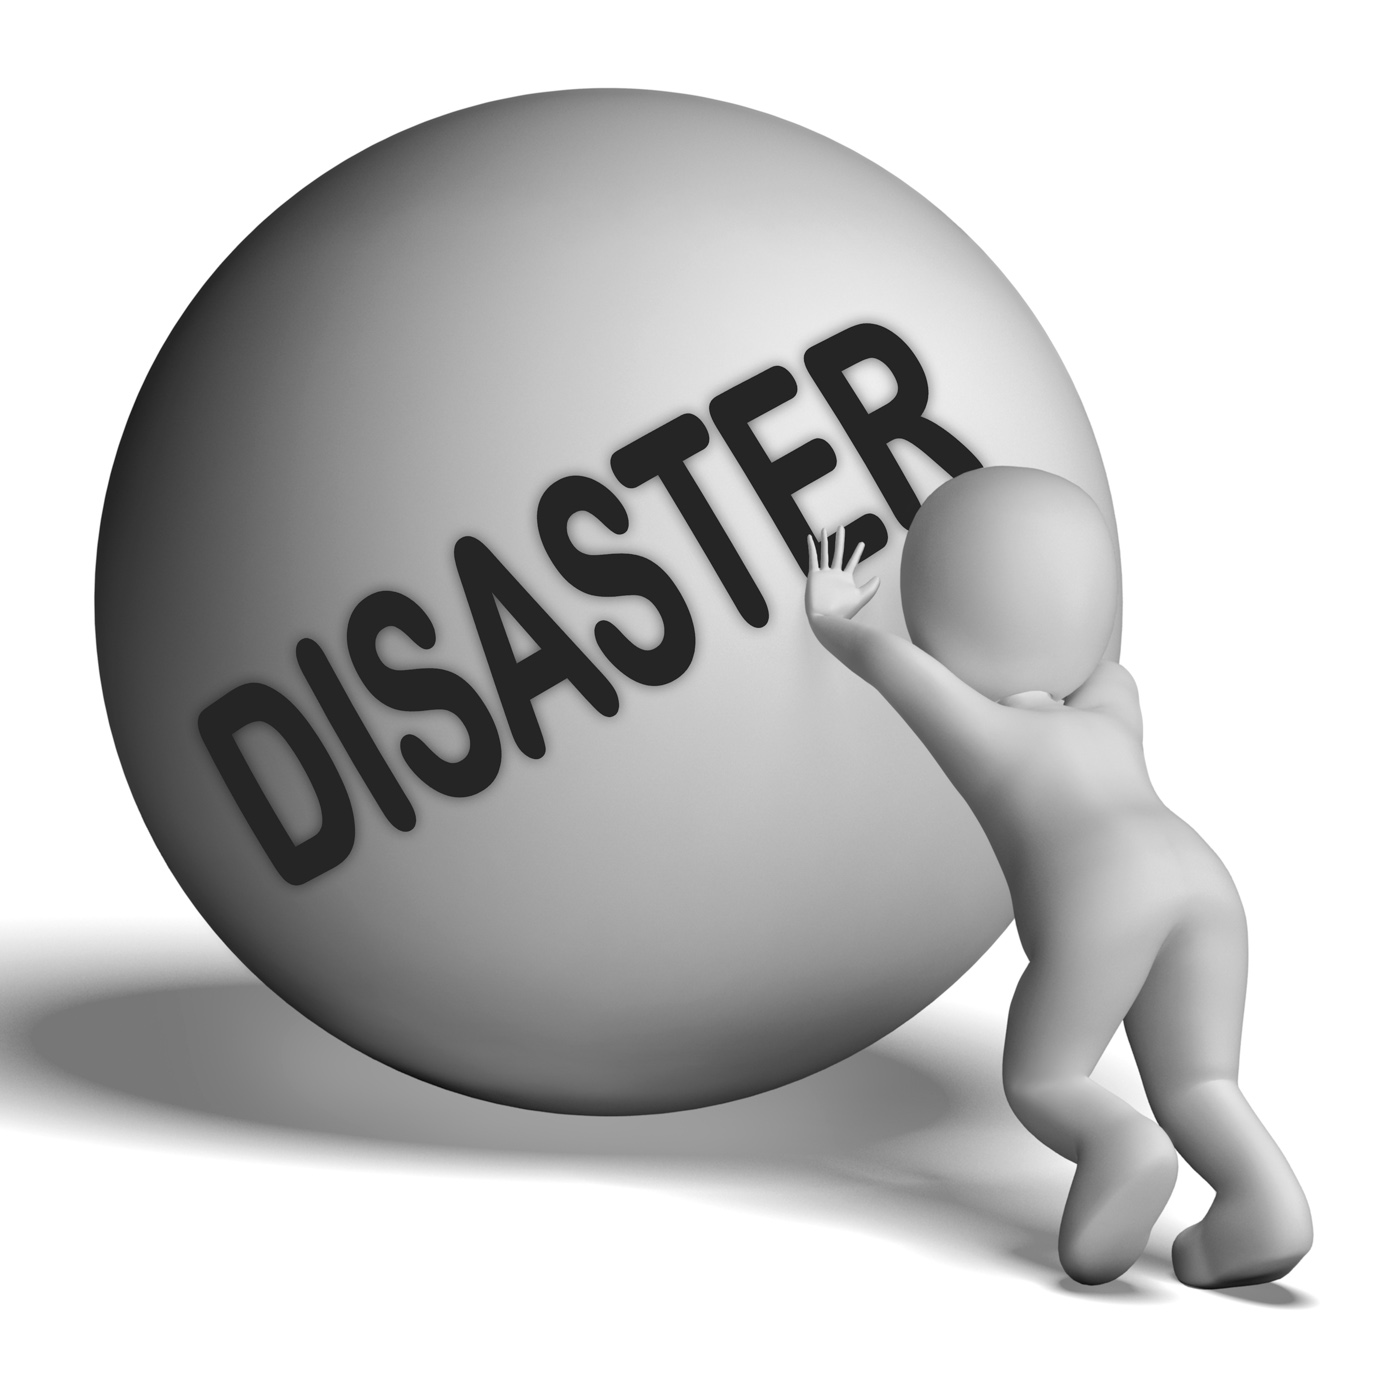 Disaster Uphill Character Shows Crisis Trouble Or Calamity, 3d, Calamity, Catastrophe, Character, HQ Photo